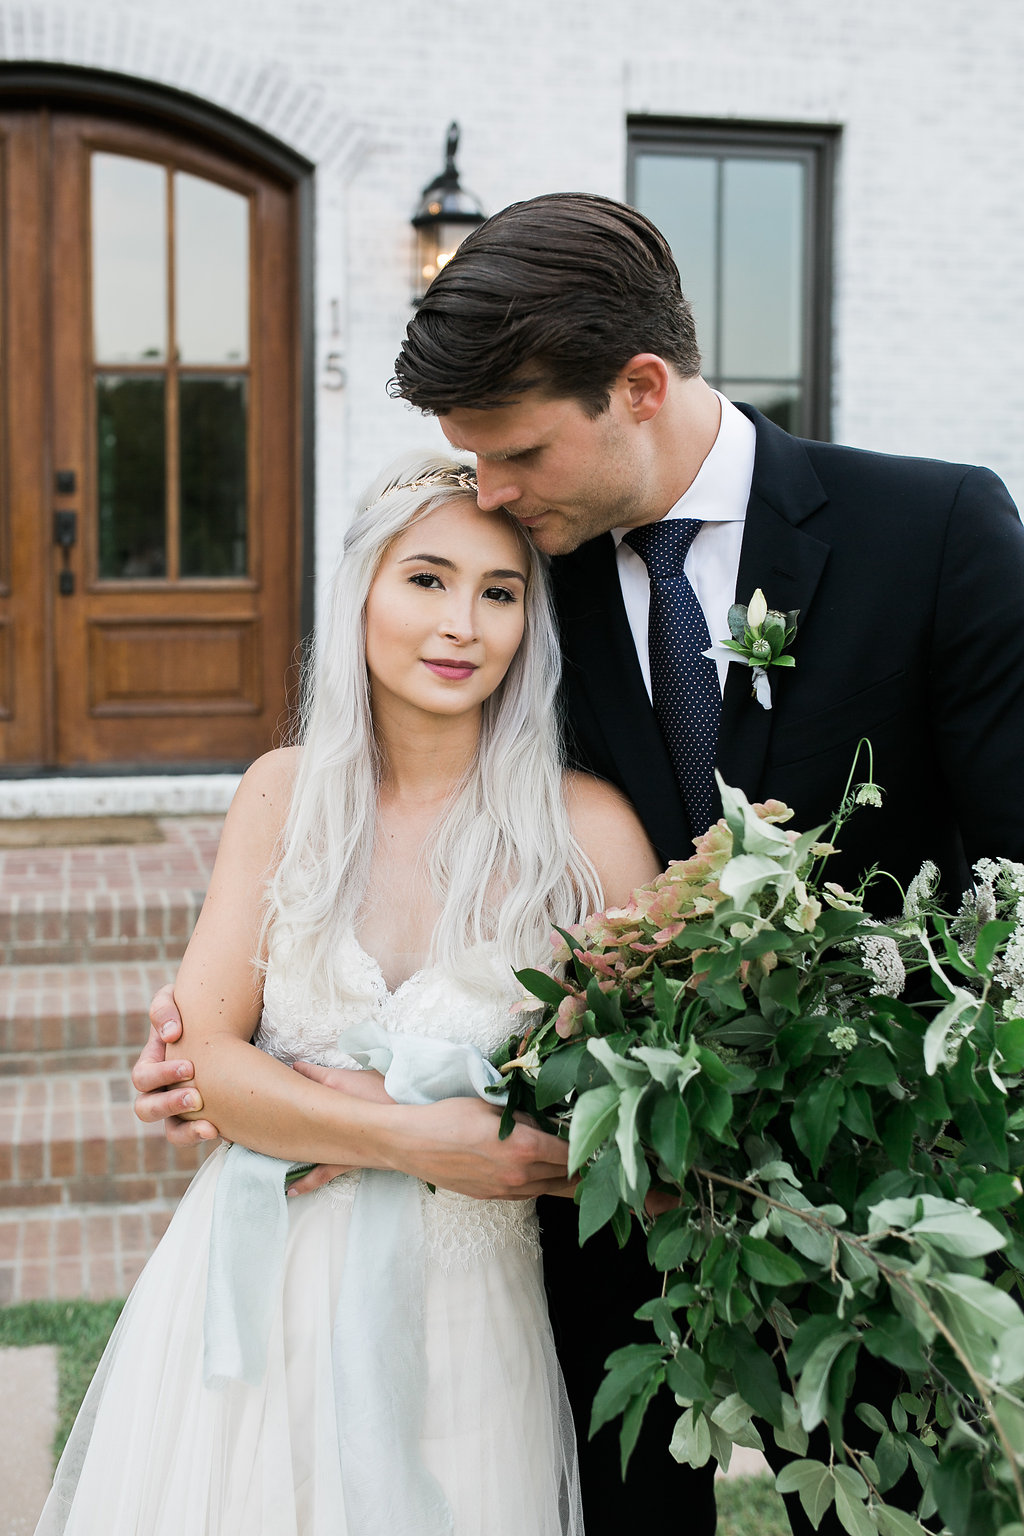 Intimate Wedding Inspiration | Koral Bleu Photography | Joy Wed blog | http://www.joy-wed.com